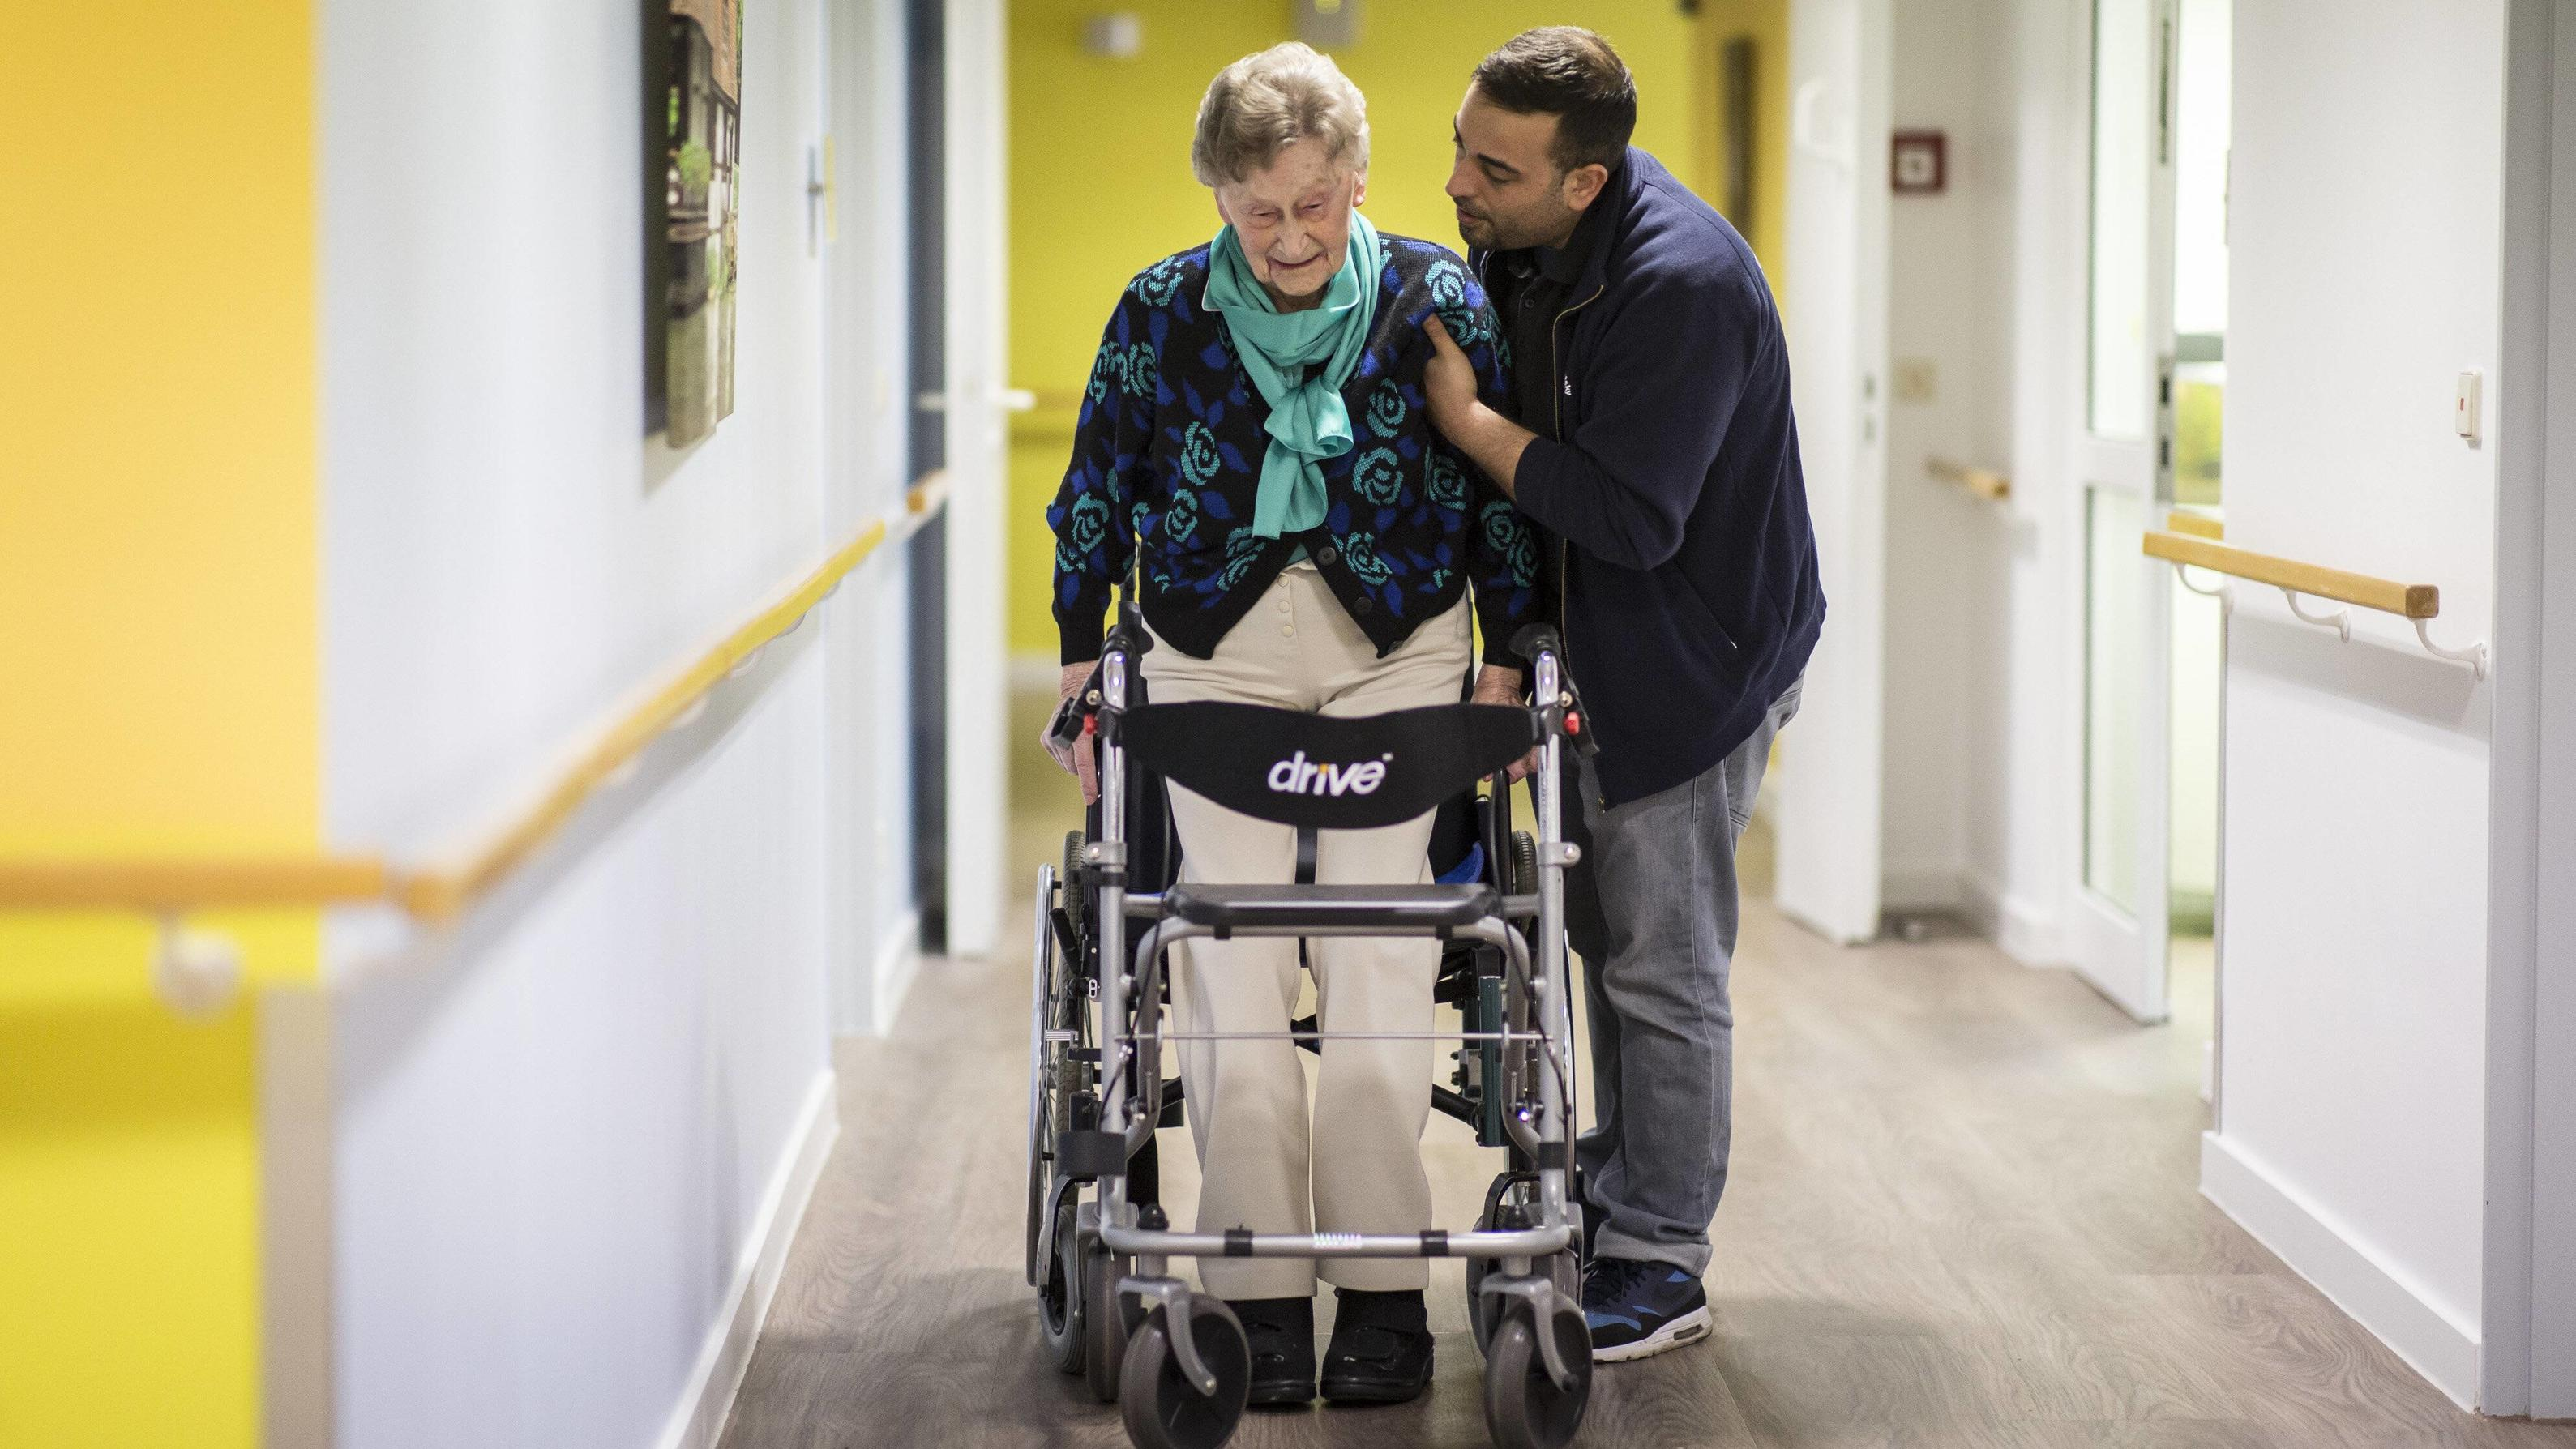 Ein Therapeut der Physiotherapie hilft einer aelteren Frau bei der Nutzung eines Rollators, aufgenommen in Berlin, 27.04.2018. NUR ZUR REDAKTIONELLEN VERWENDUNG. Berlin Deutschland *** A therapist of physiotherapy helps an older woman using a rollato